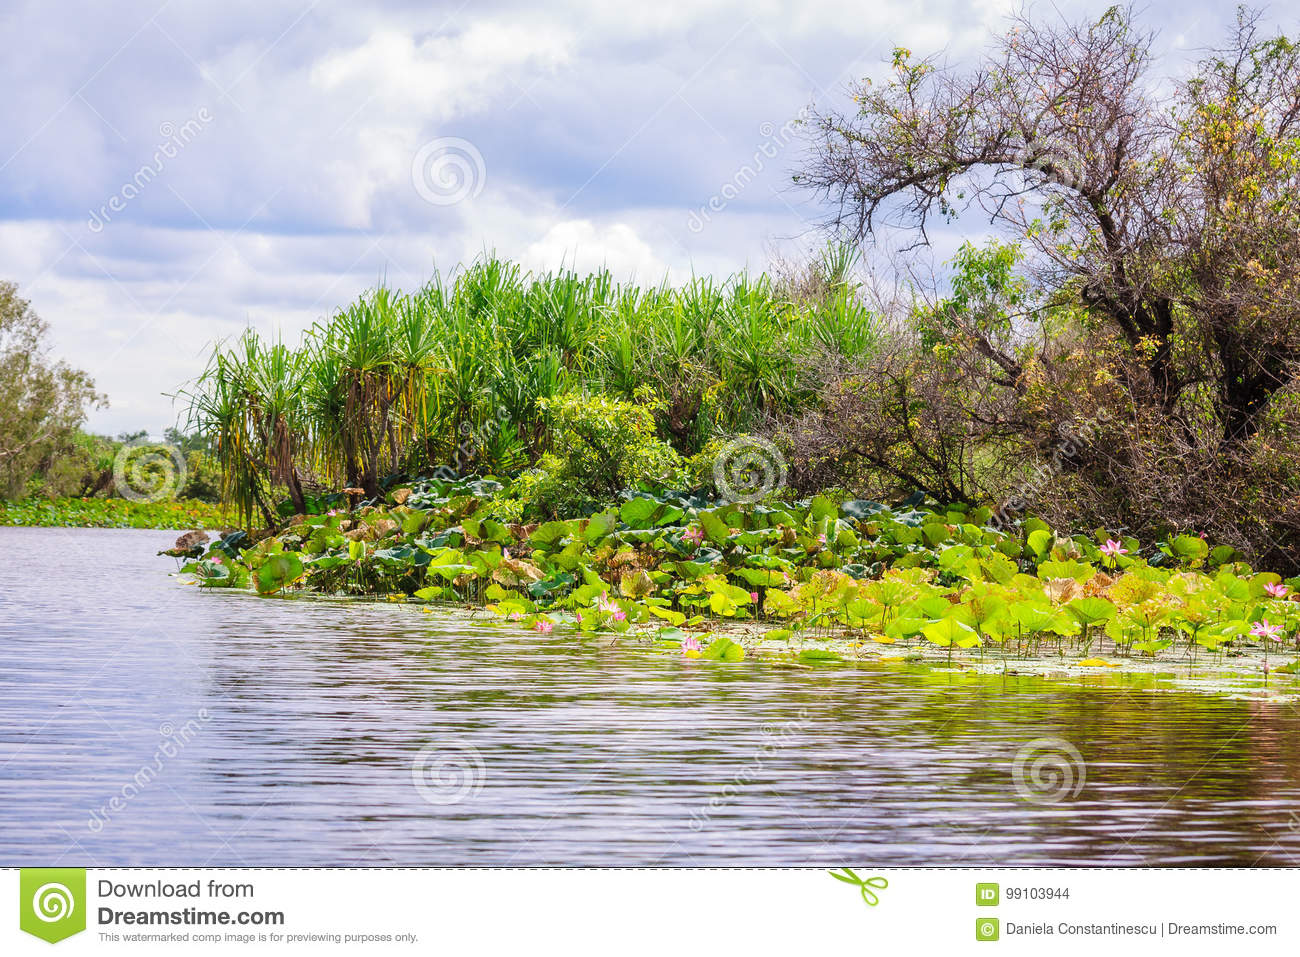 Corroboree Billabong calm waters, with its banks covered in lotuses in Nothern Territory, Australia